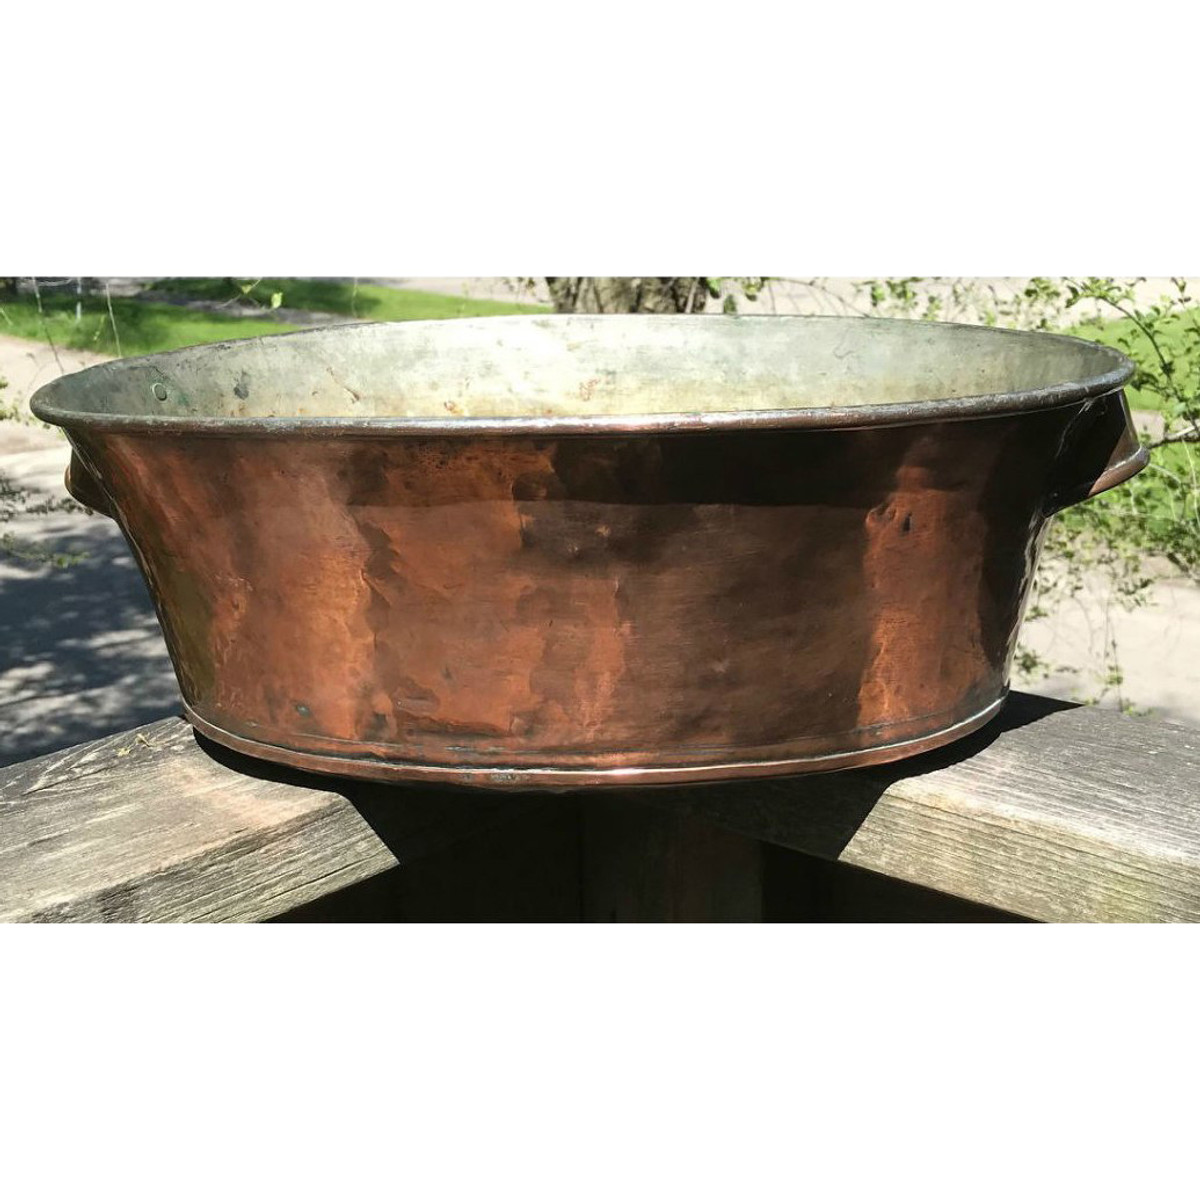 A18057 - Antique 19th Century Copper Pot with Handles